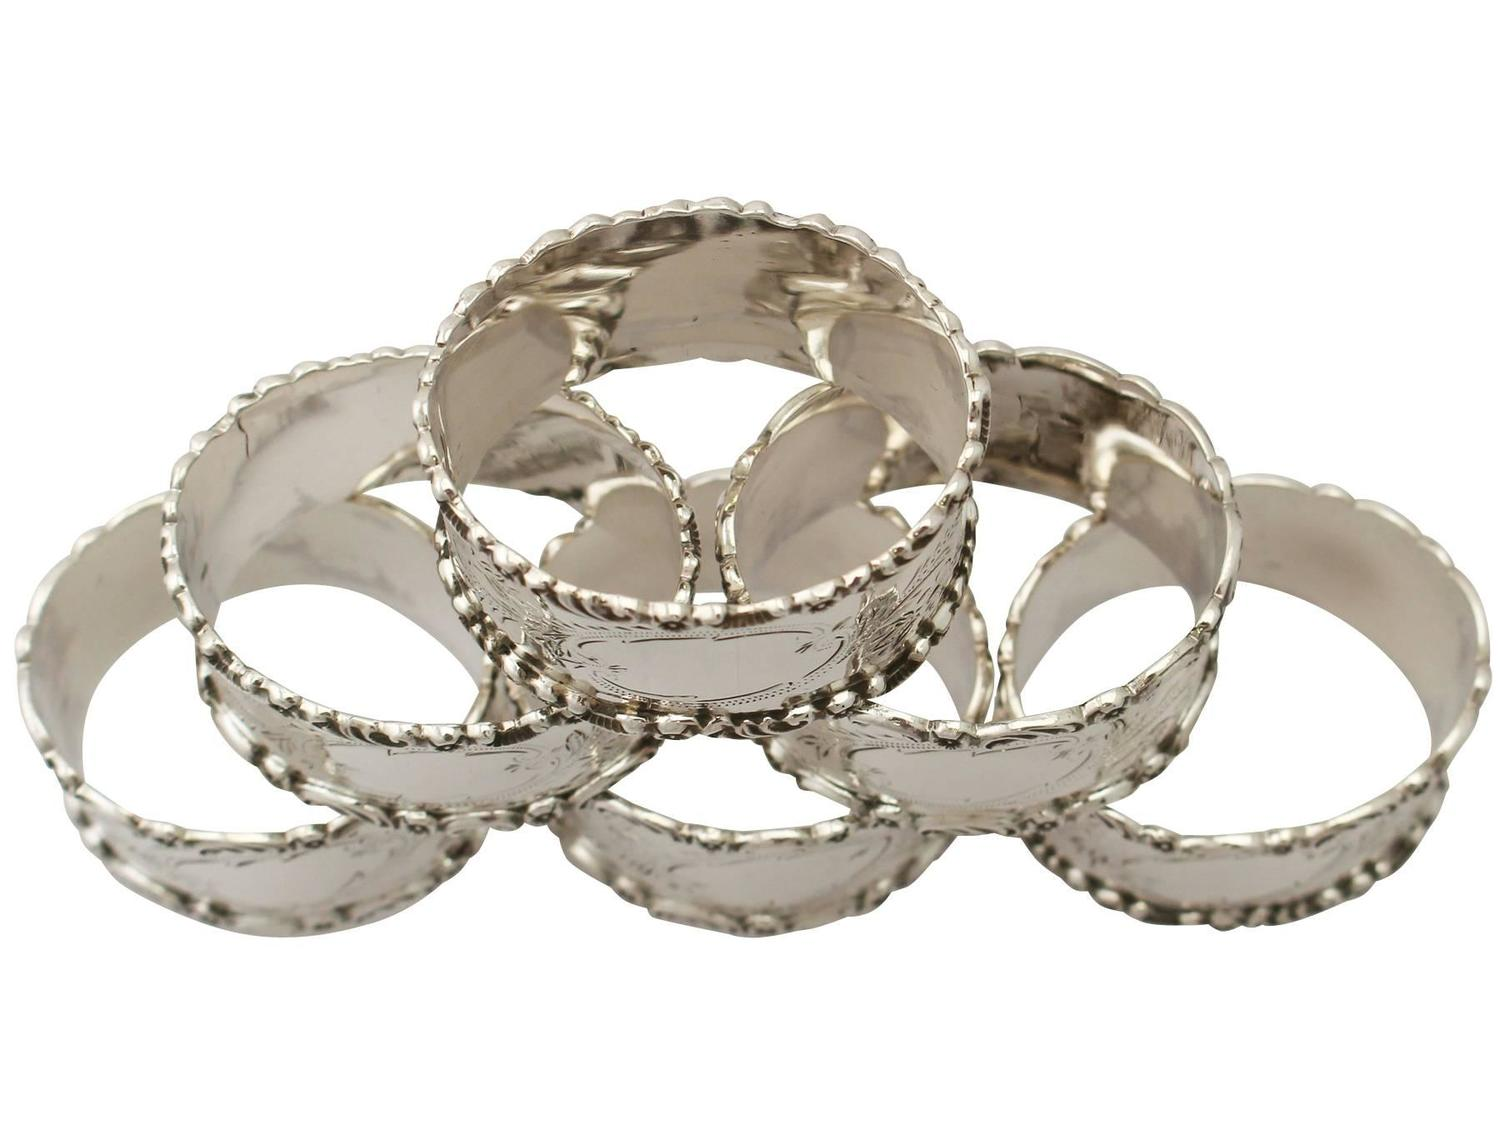 sterling silver napkin rings set of six antique edwardian